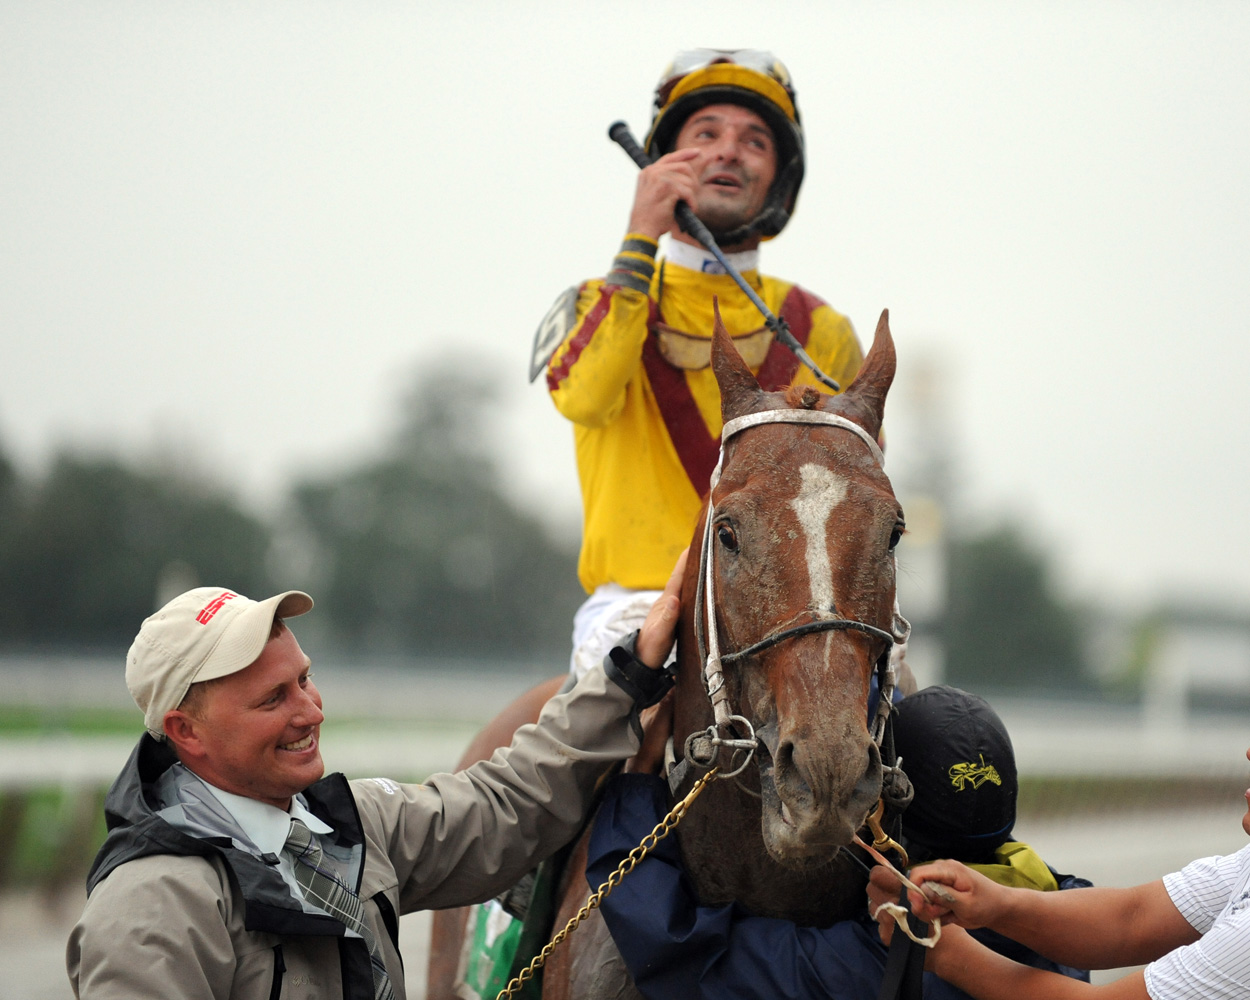 Curlin and Robby Albarado after winning their second consecutive Jockey Club Gold Cup (NYRA)